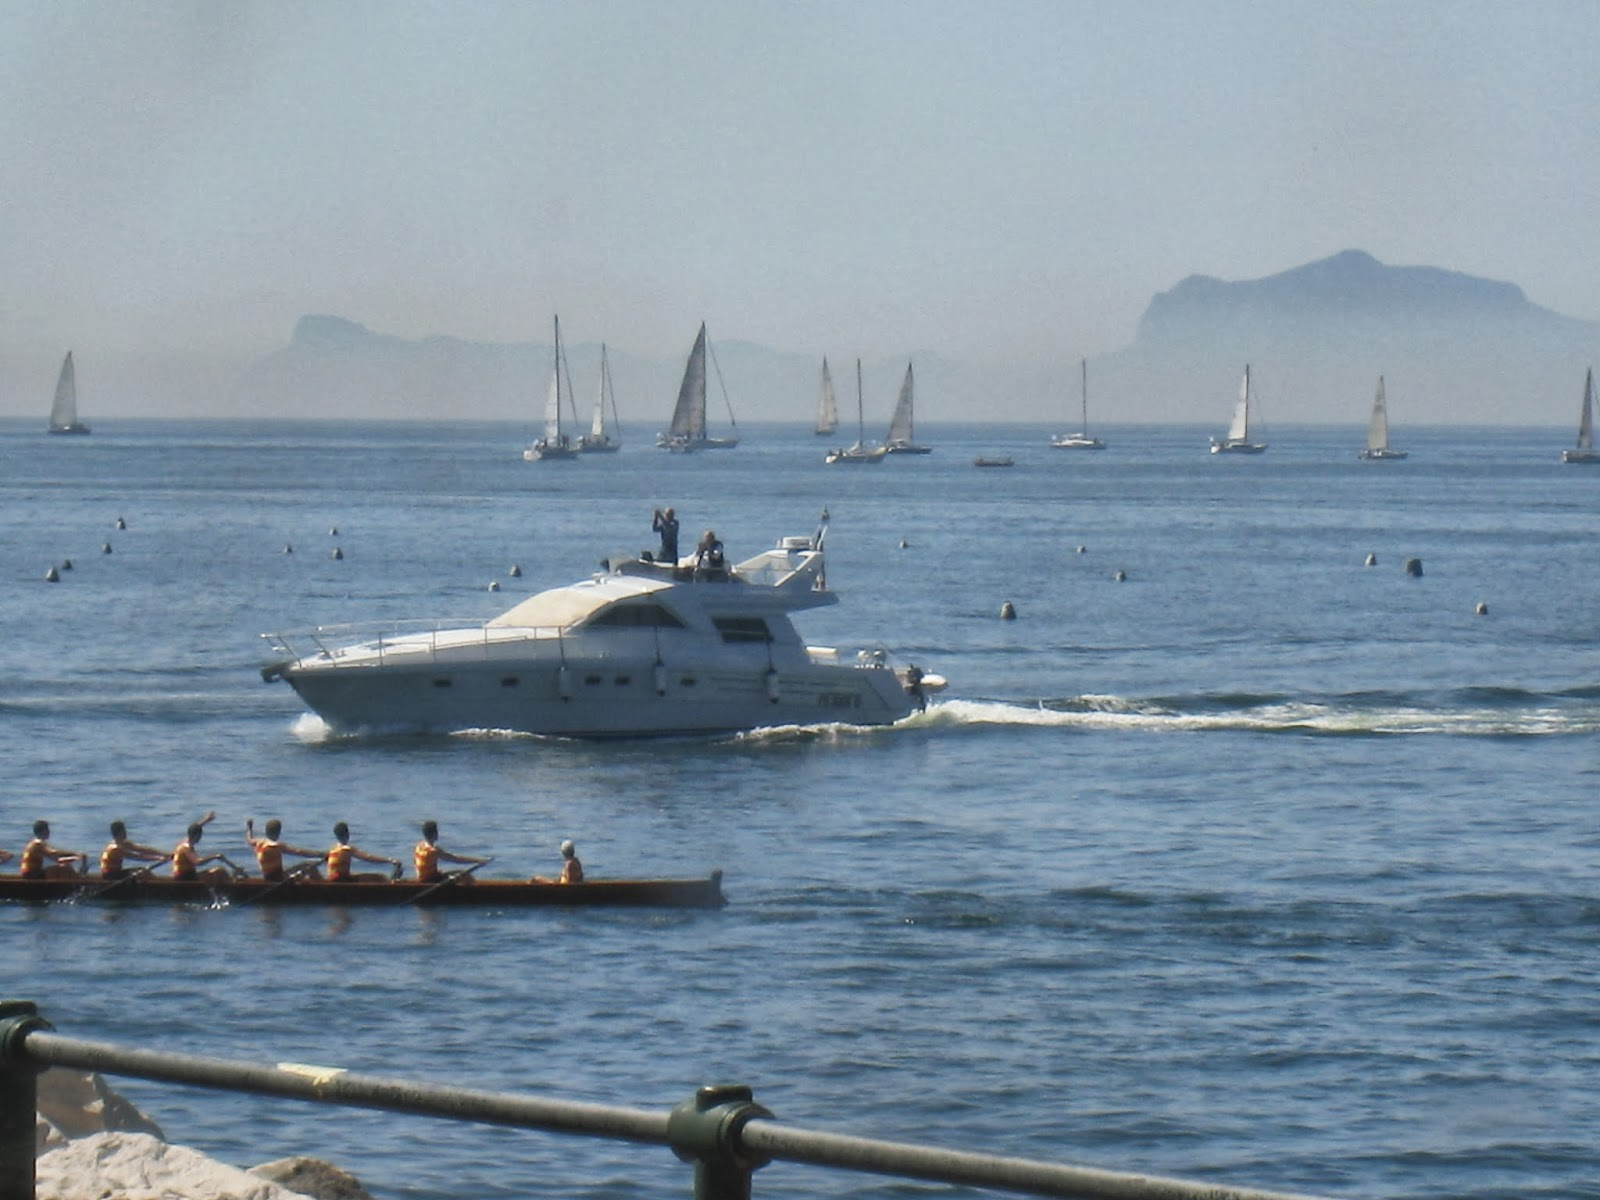 Boat-Racing-Challenge-at-Naples-Italy-Beauty-of-Italy